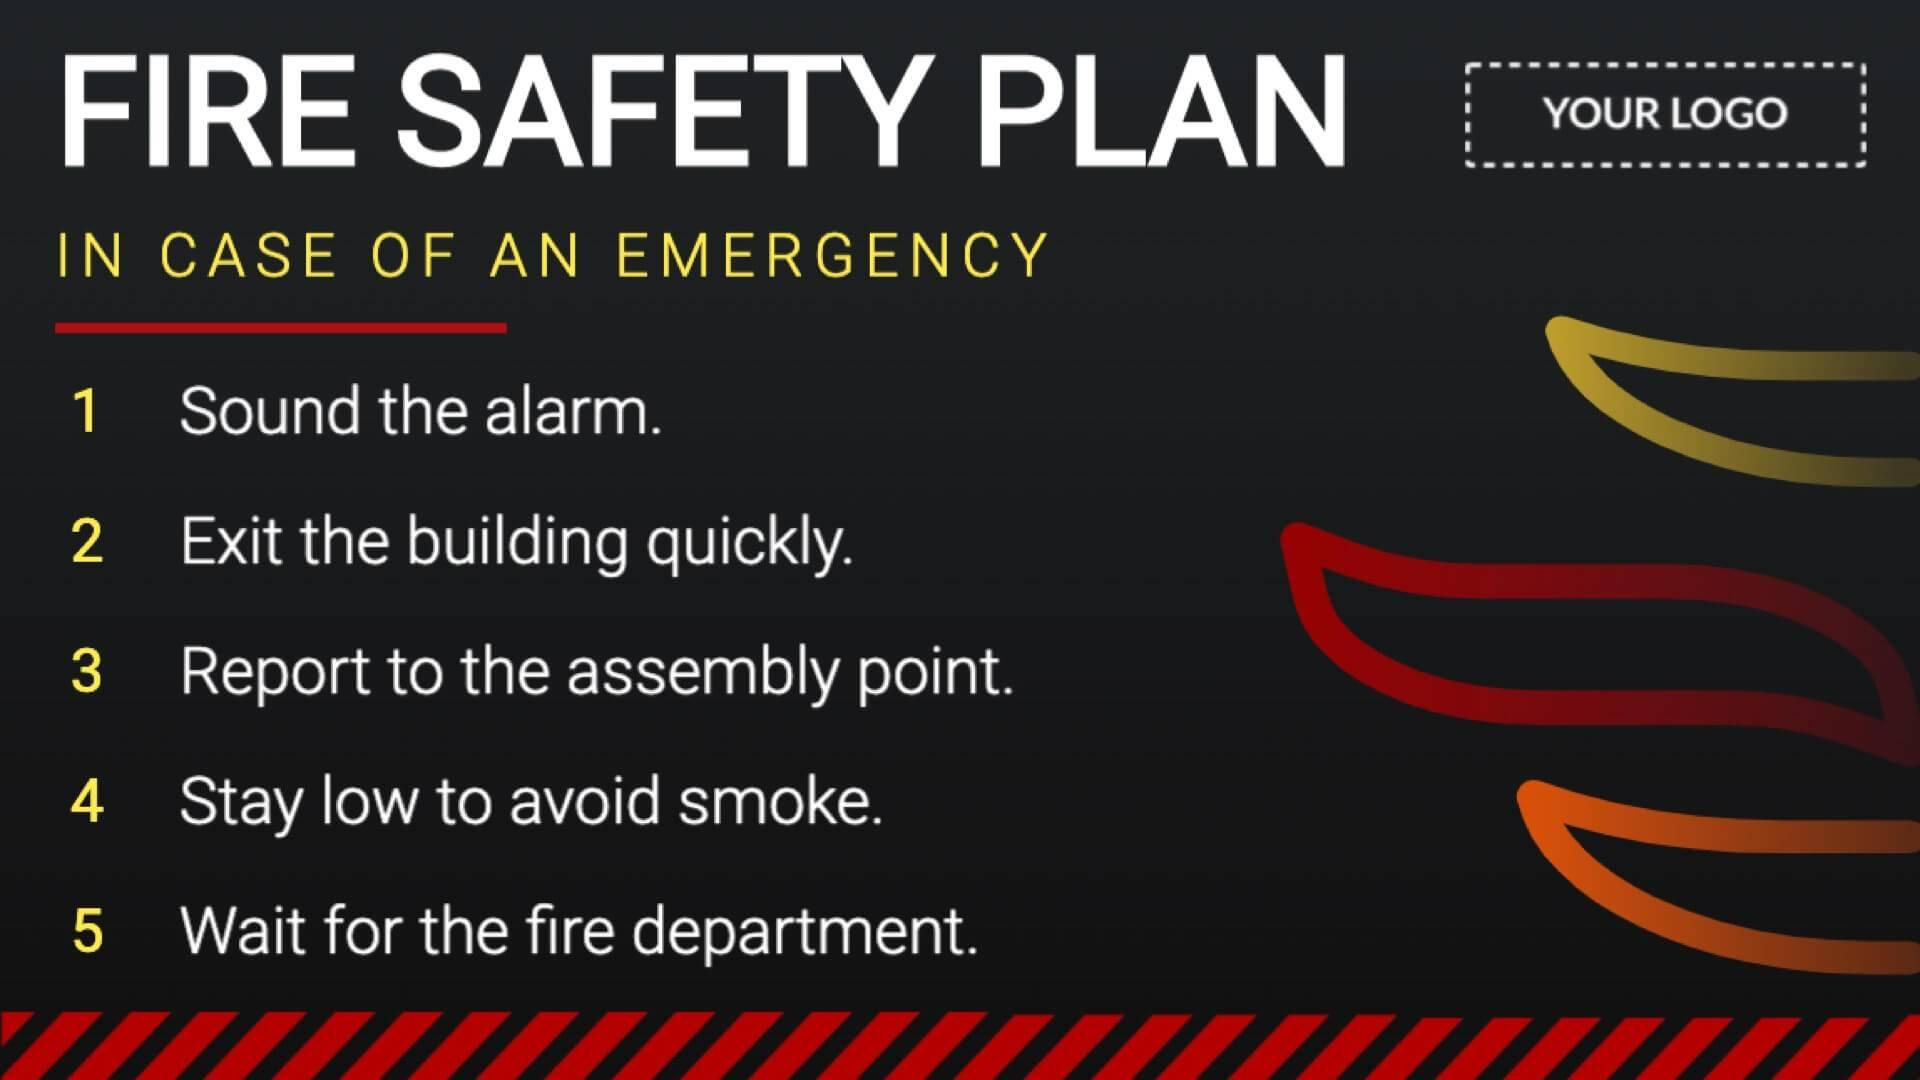 Campaign Fire Safety Digital Signage Template